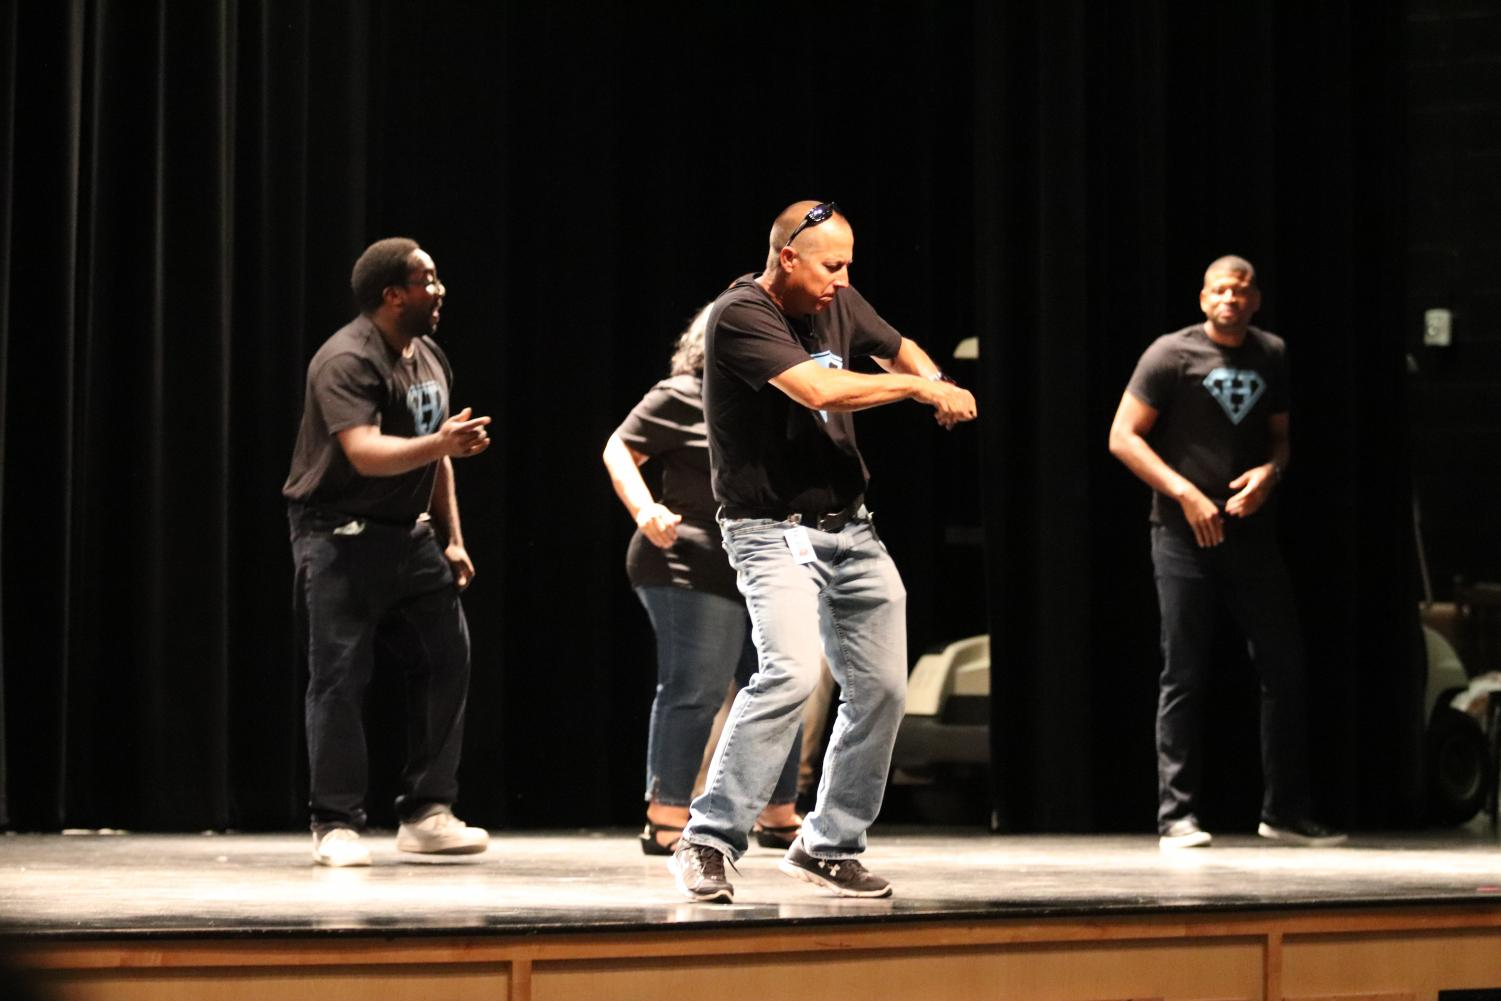 Athletic Director Jay Getty dances at the senior skit. Relating to students is only one of his many attributes that contributed to this award.